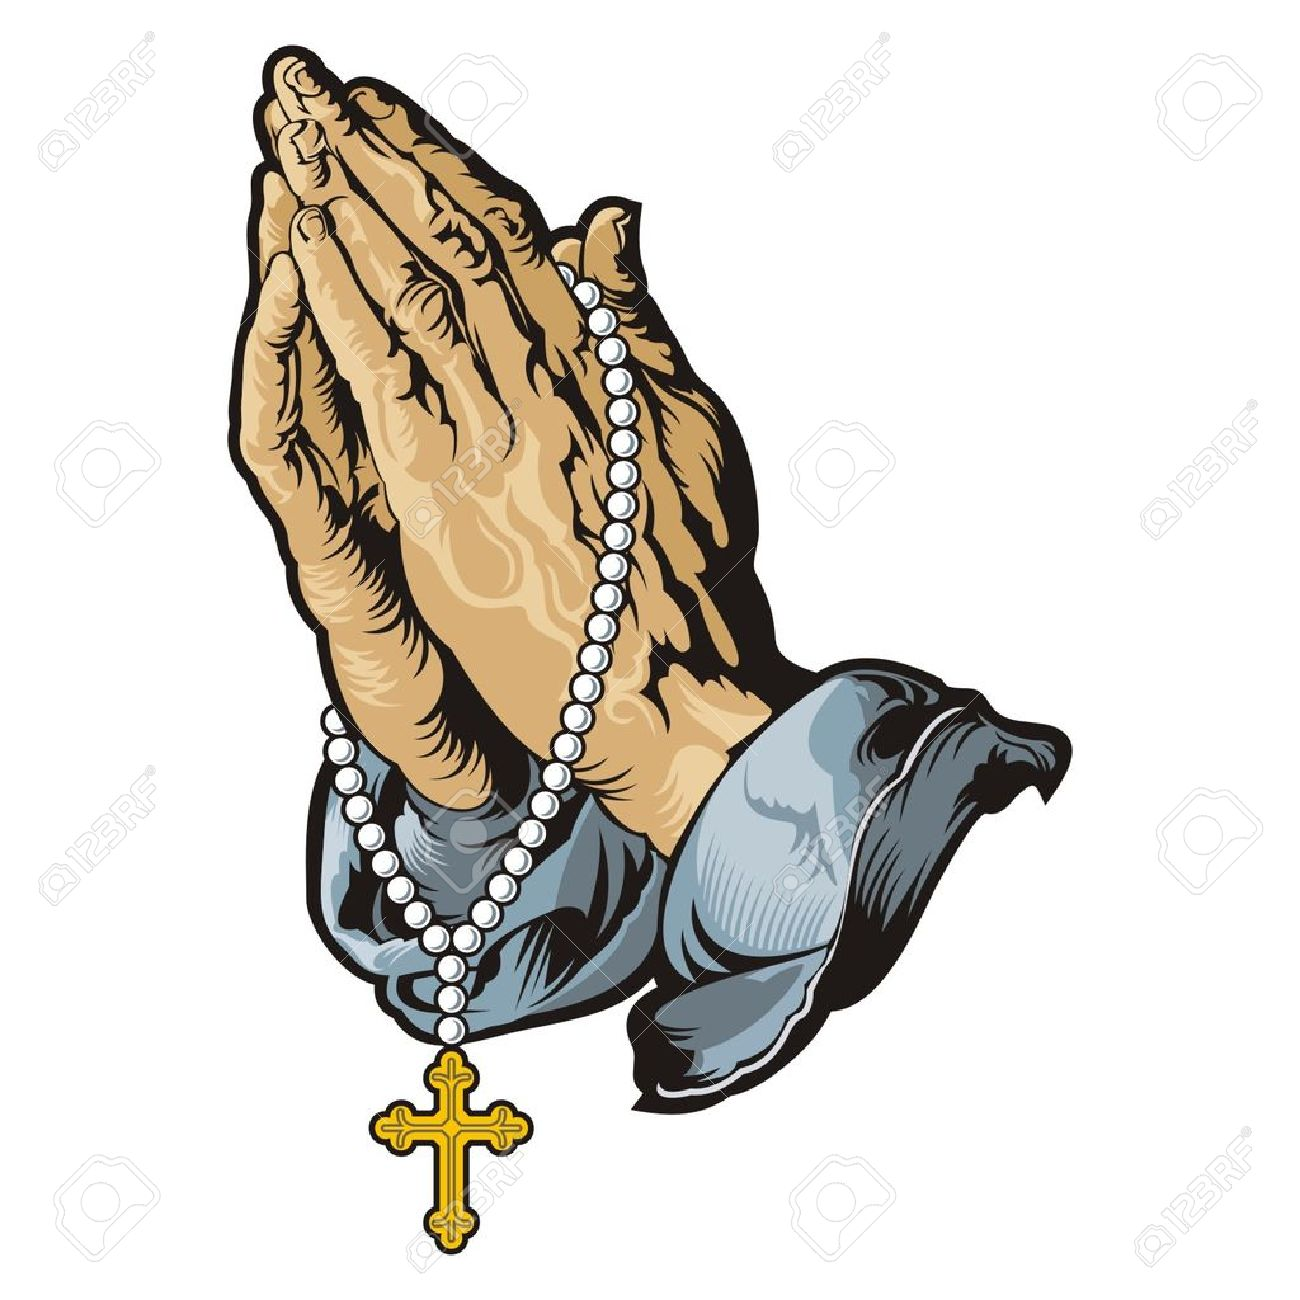 1300x1300 Praying Hands With Rosary Vector Royalty Free Cliparts, Vectors